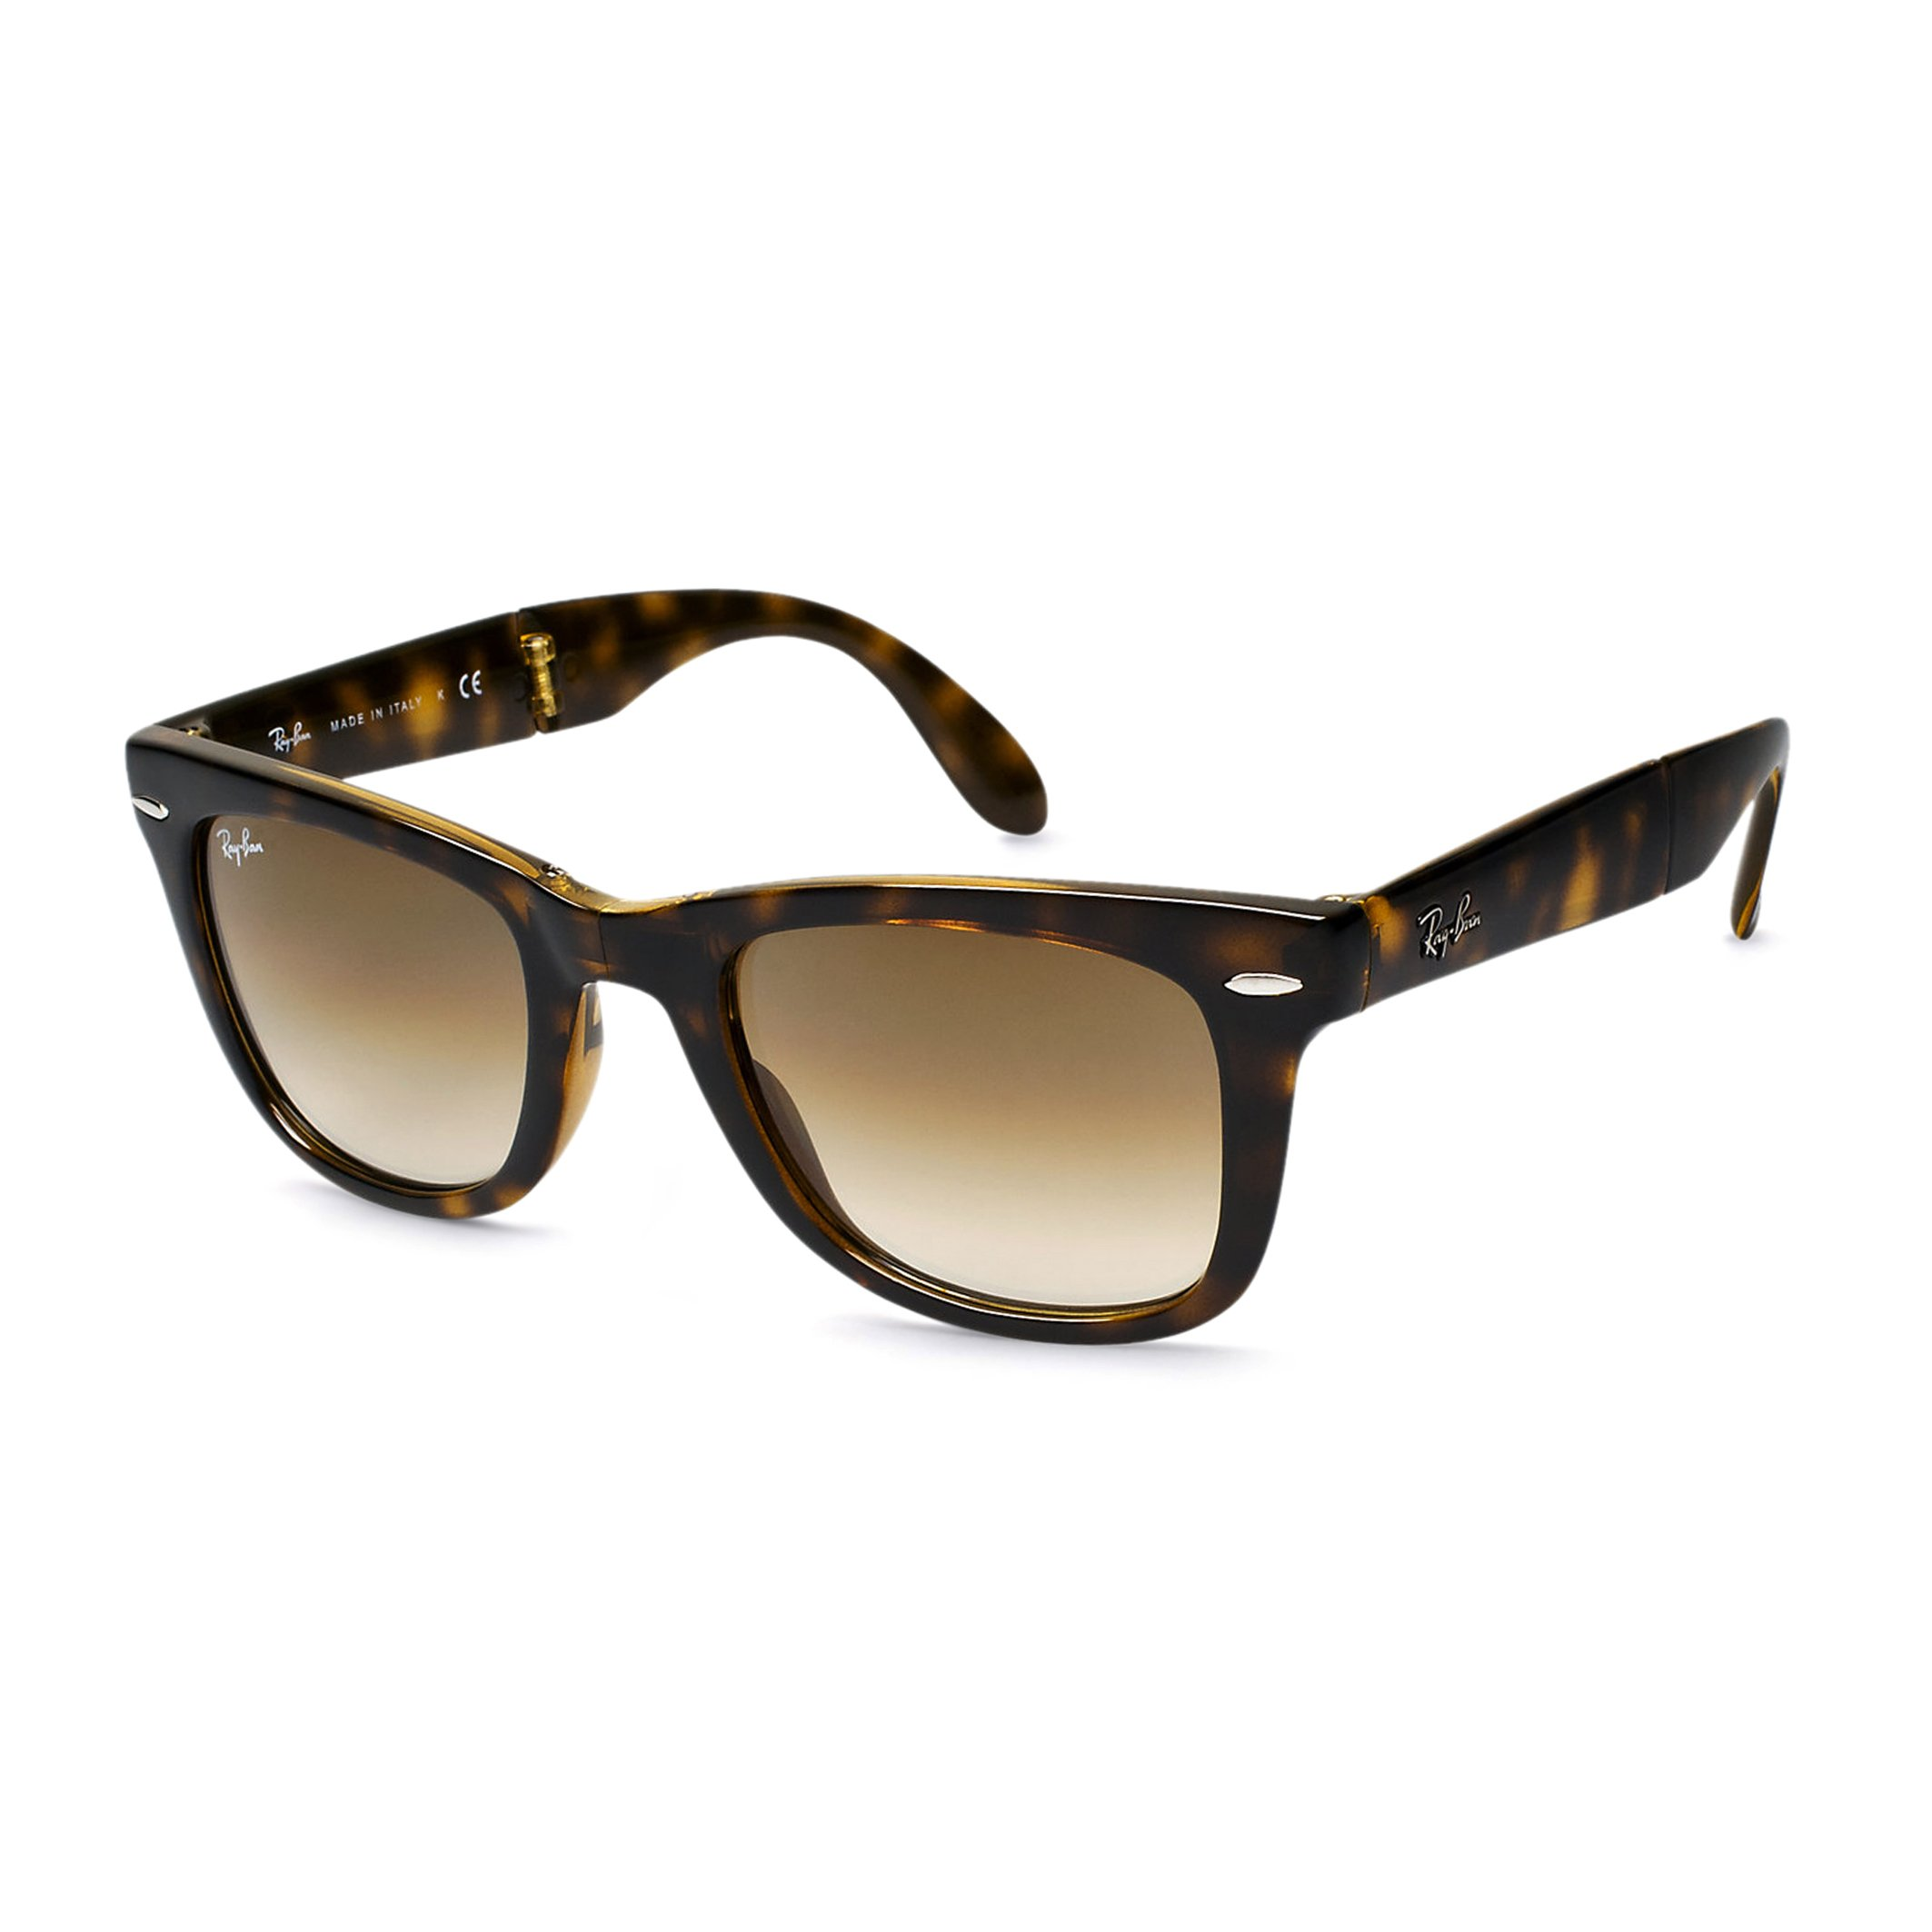 Ray-Ban Unisex Sunglasses Various Colours 0RB4105 - brown-3 NOSIZE